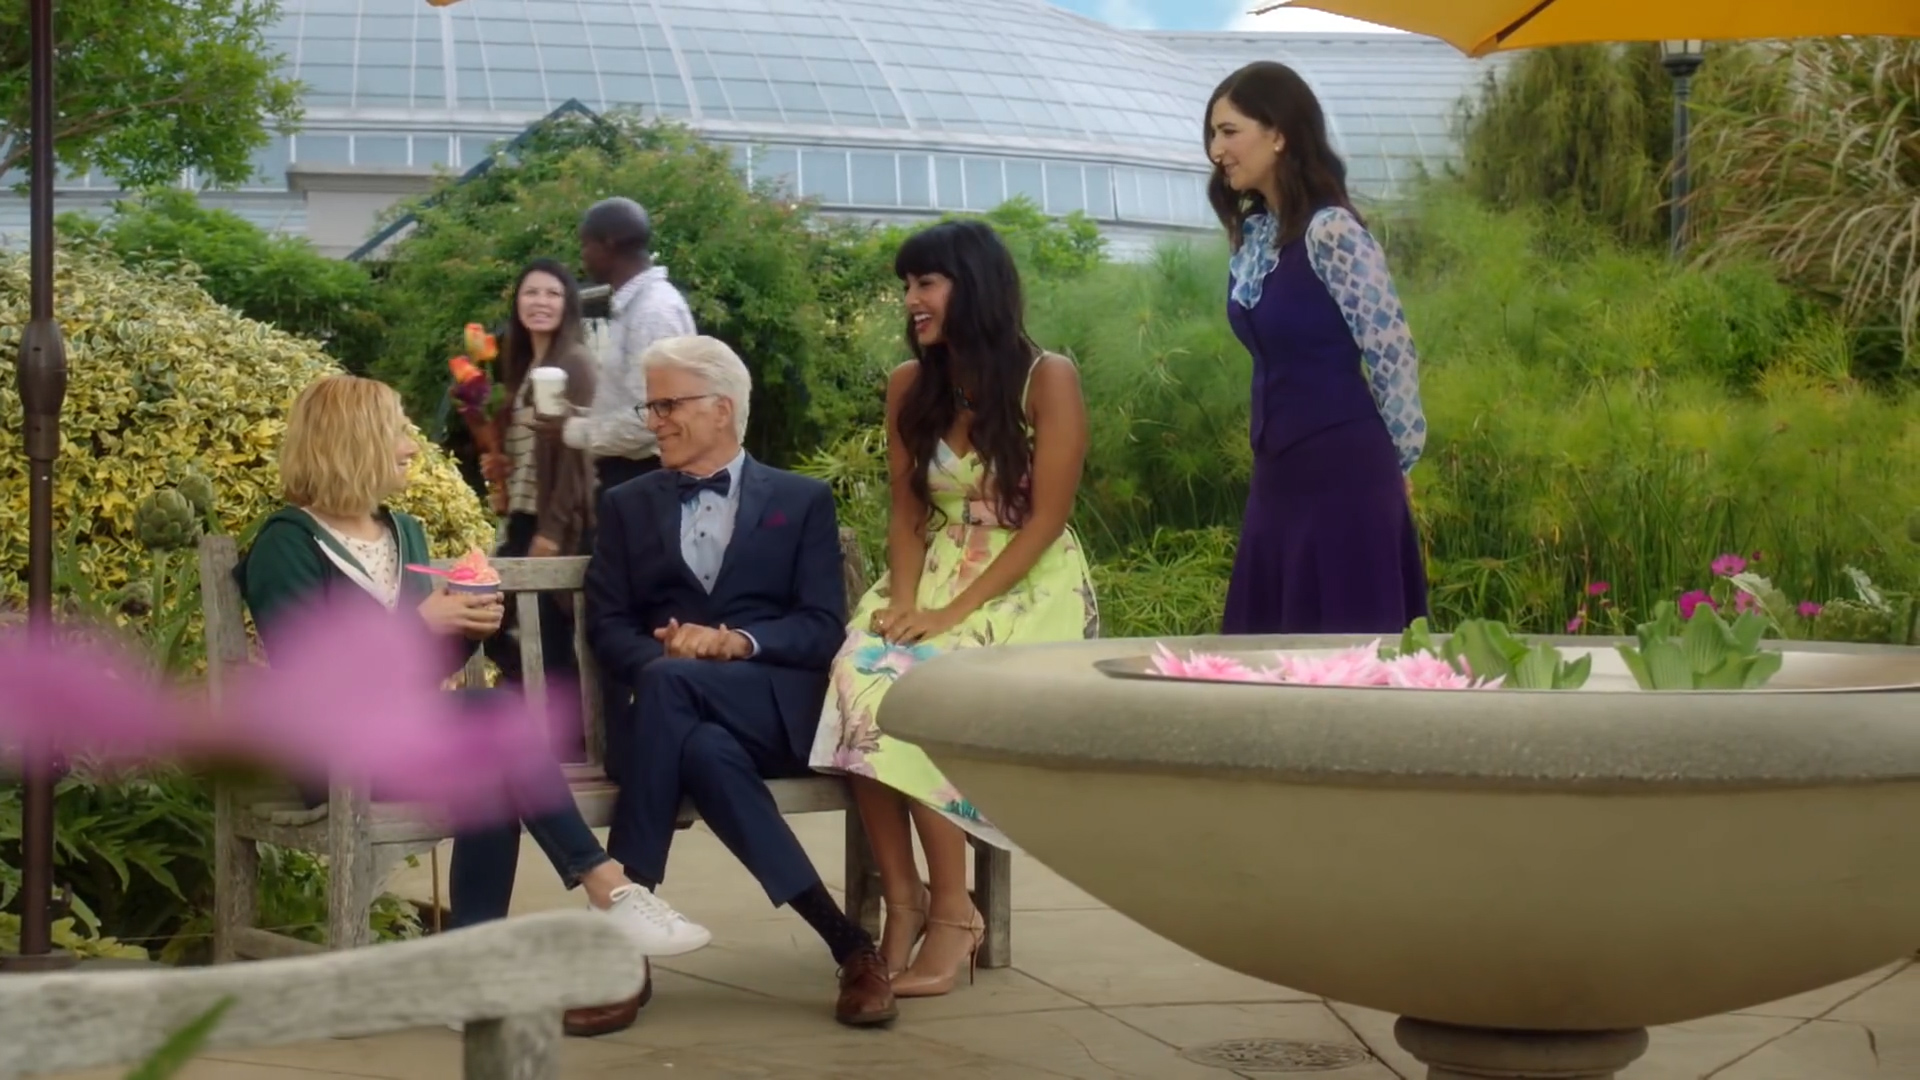 [1] The Good Place - S1 E3